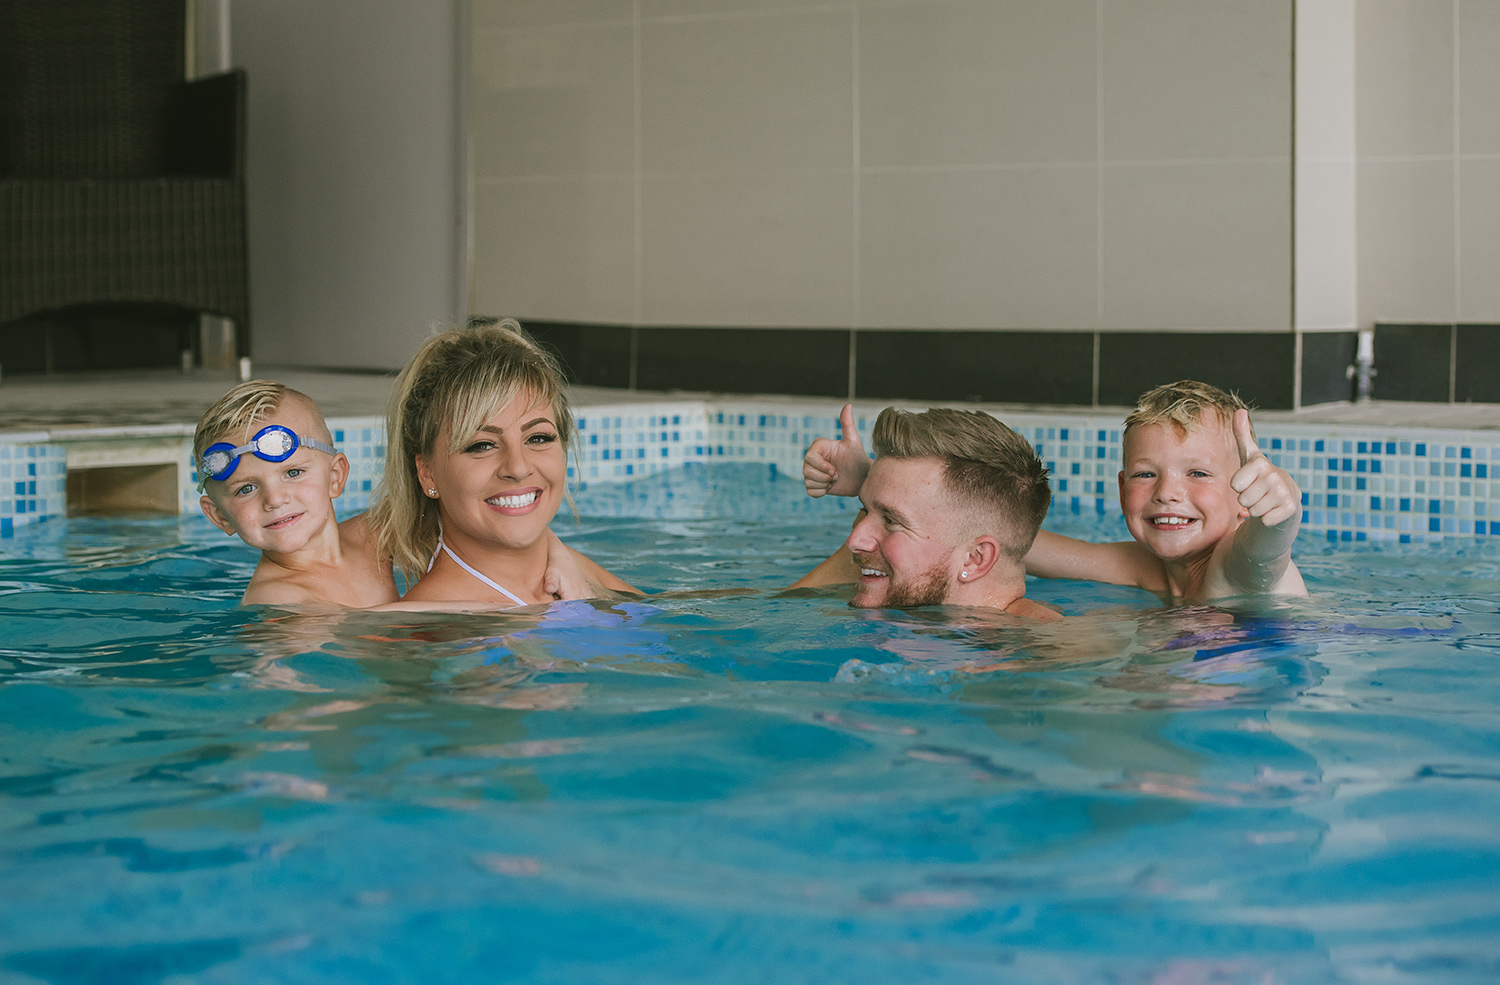 creative-commercial-lifestyle-photography-family-fun-pool.jpg